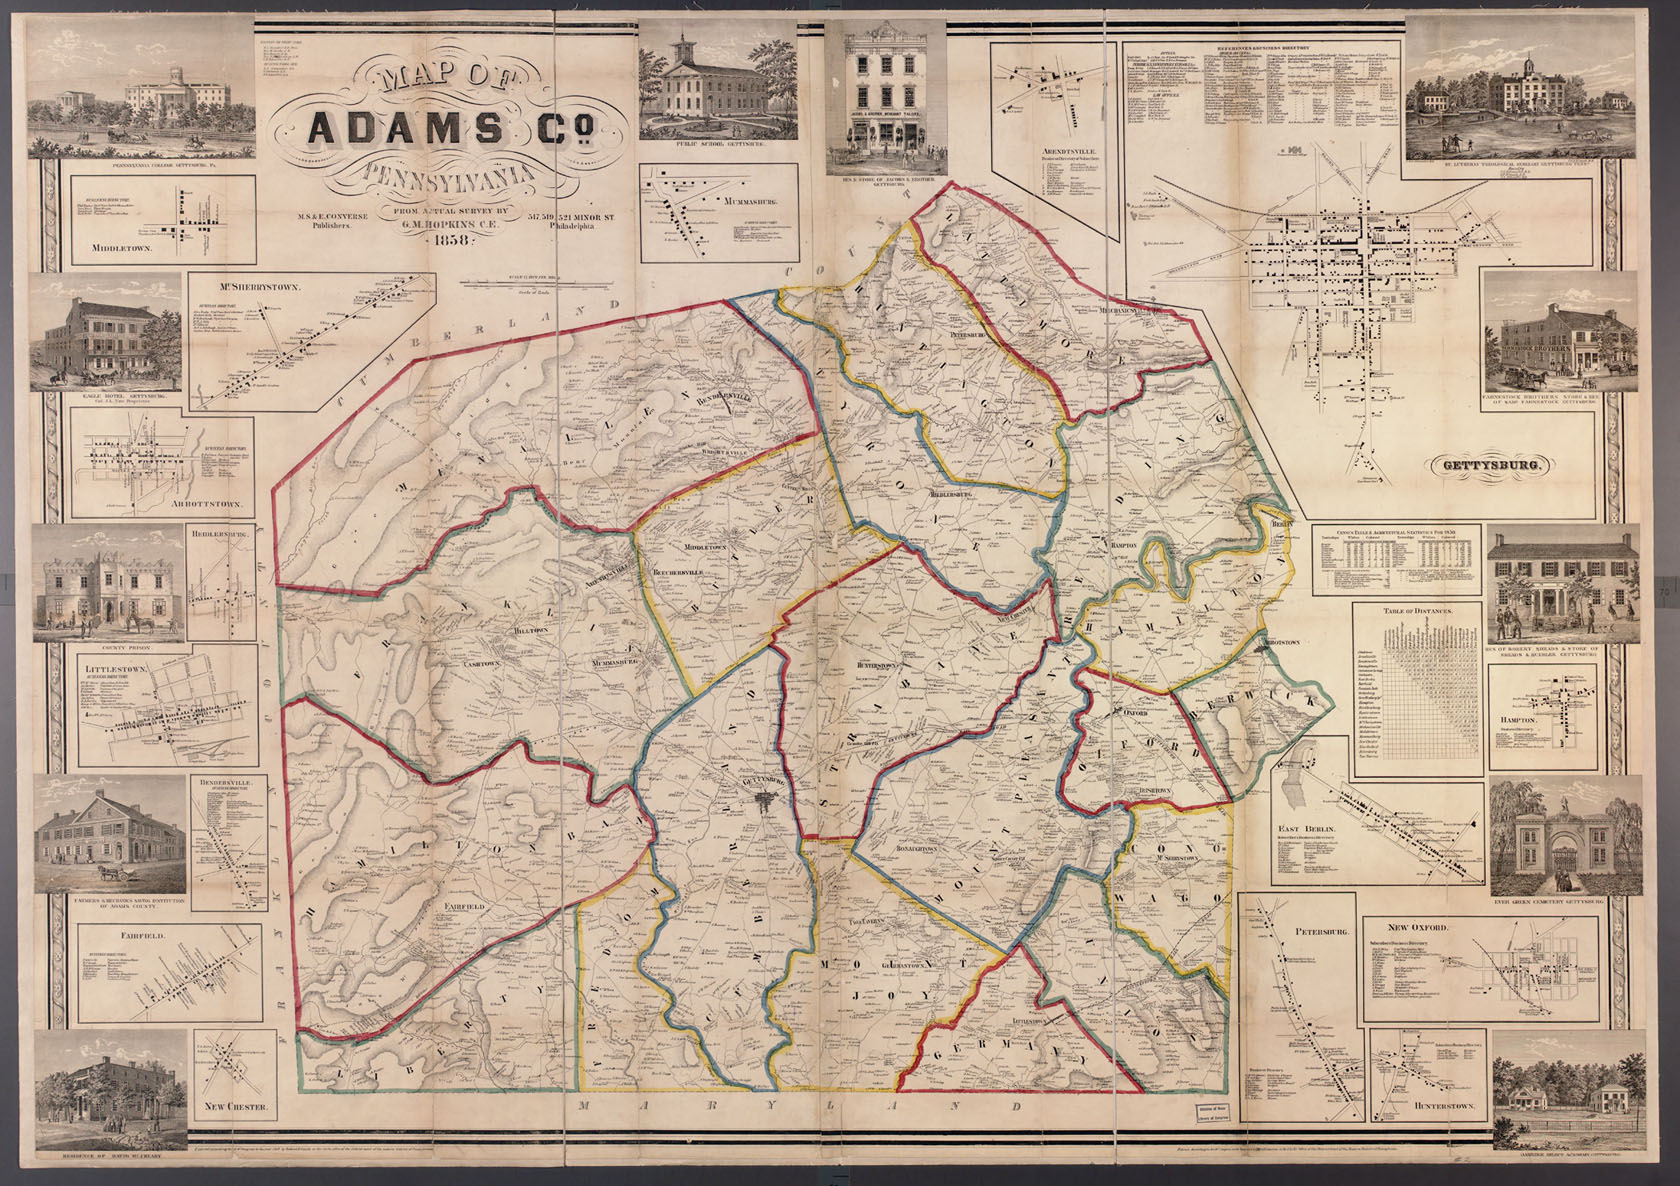 Ancestor Tracks: Adams County Atlas, 1858 on map of new paris pa, map of loganville pa, map of shamokin dam pa, map of upper st clair pa, map of throop pa, map of narberth pa, map of berkshire pa, map of wilburton pa, map of lawrence park pa, map of newry pa, map of point marion pa, map of saint marys pa, map of mahaffey pa, map of schellsburg pa, map of mount union pa, map of armagh pa, map of russellton pa, map of madison pa, map of norwood pa, map of spring mills pa,